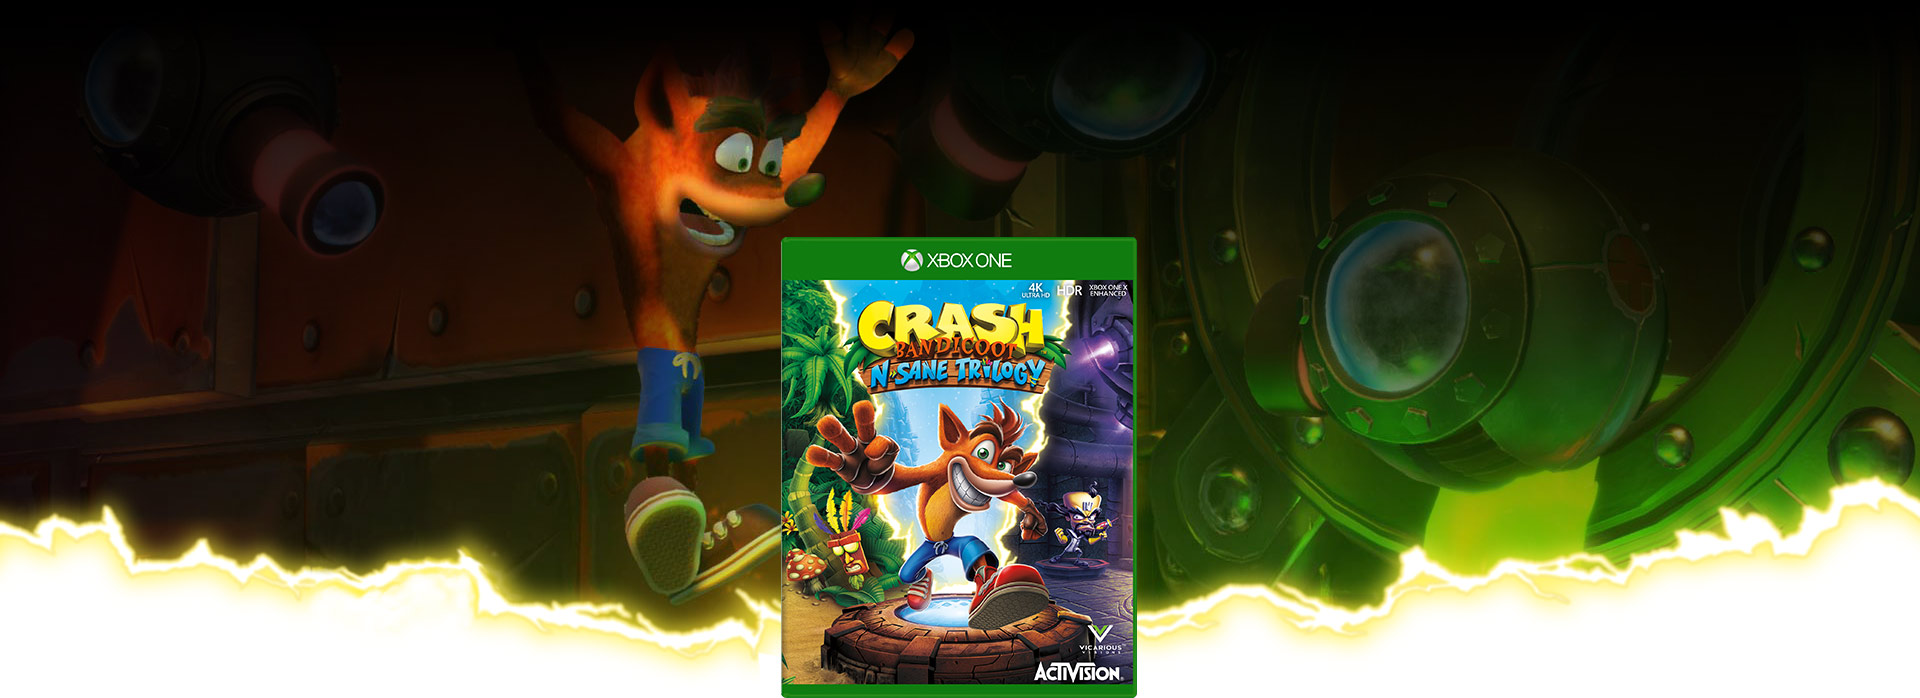 Crash Bandicoot insane trilogy boxshot with lightning streaks shooting from the box. In the background Crash jumps above green ooze.